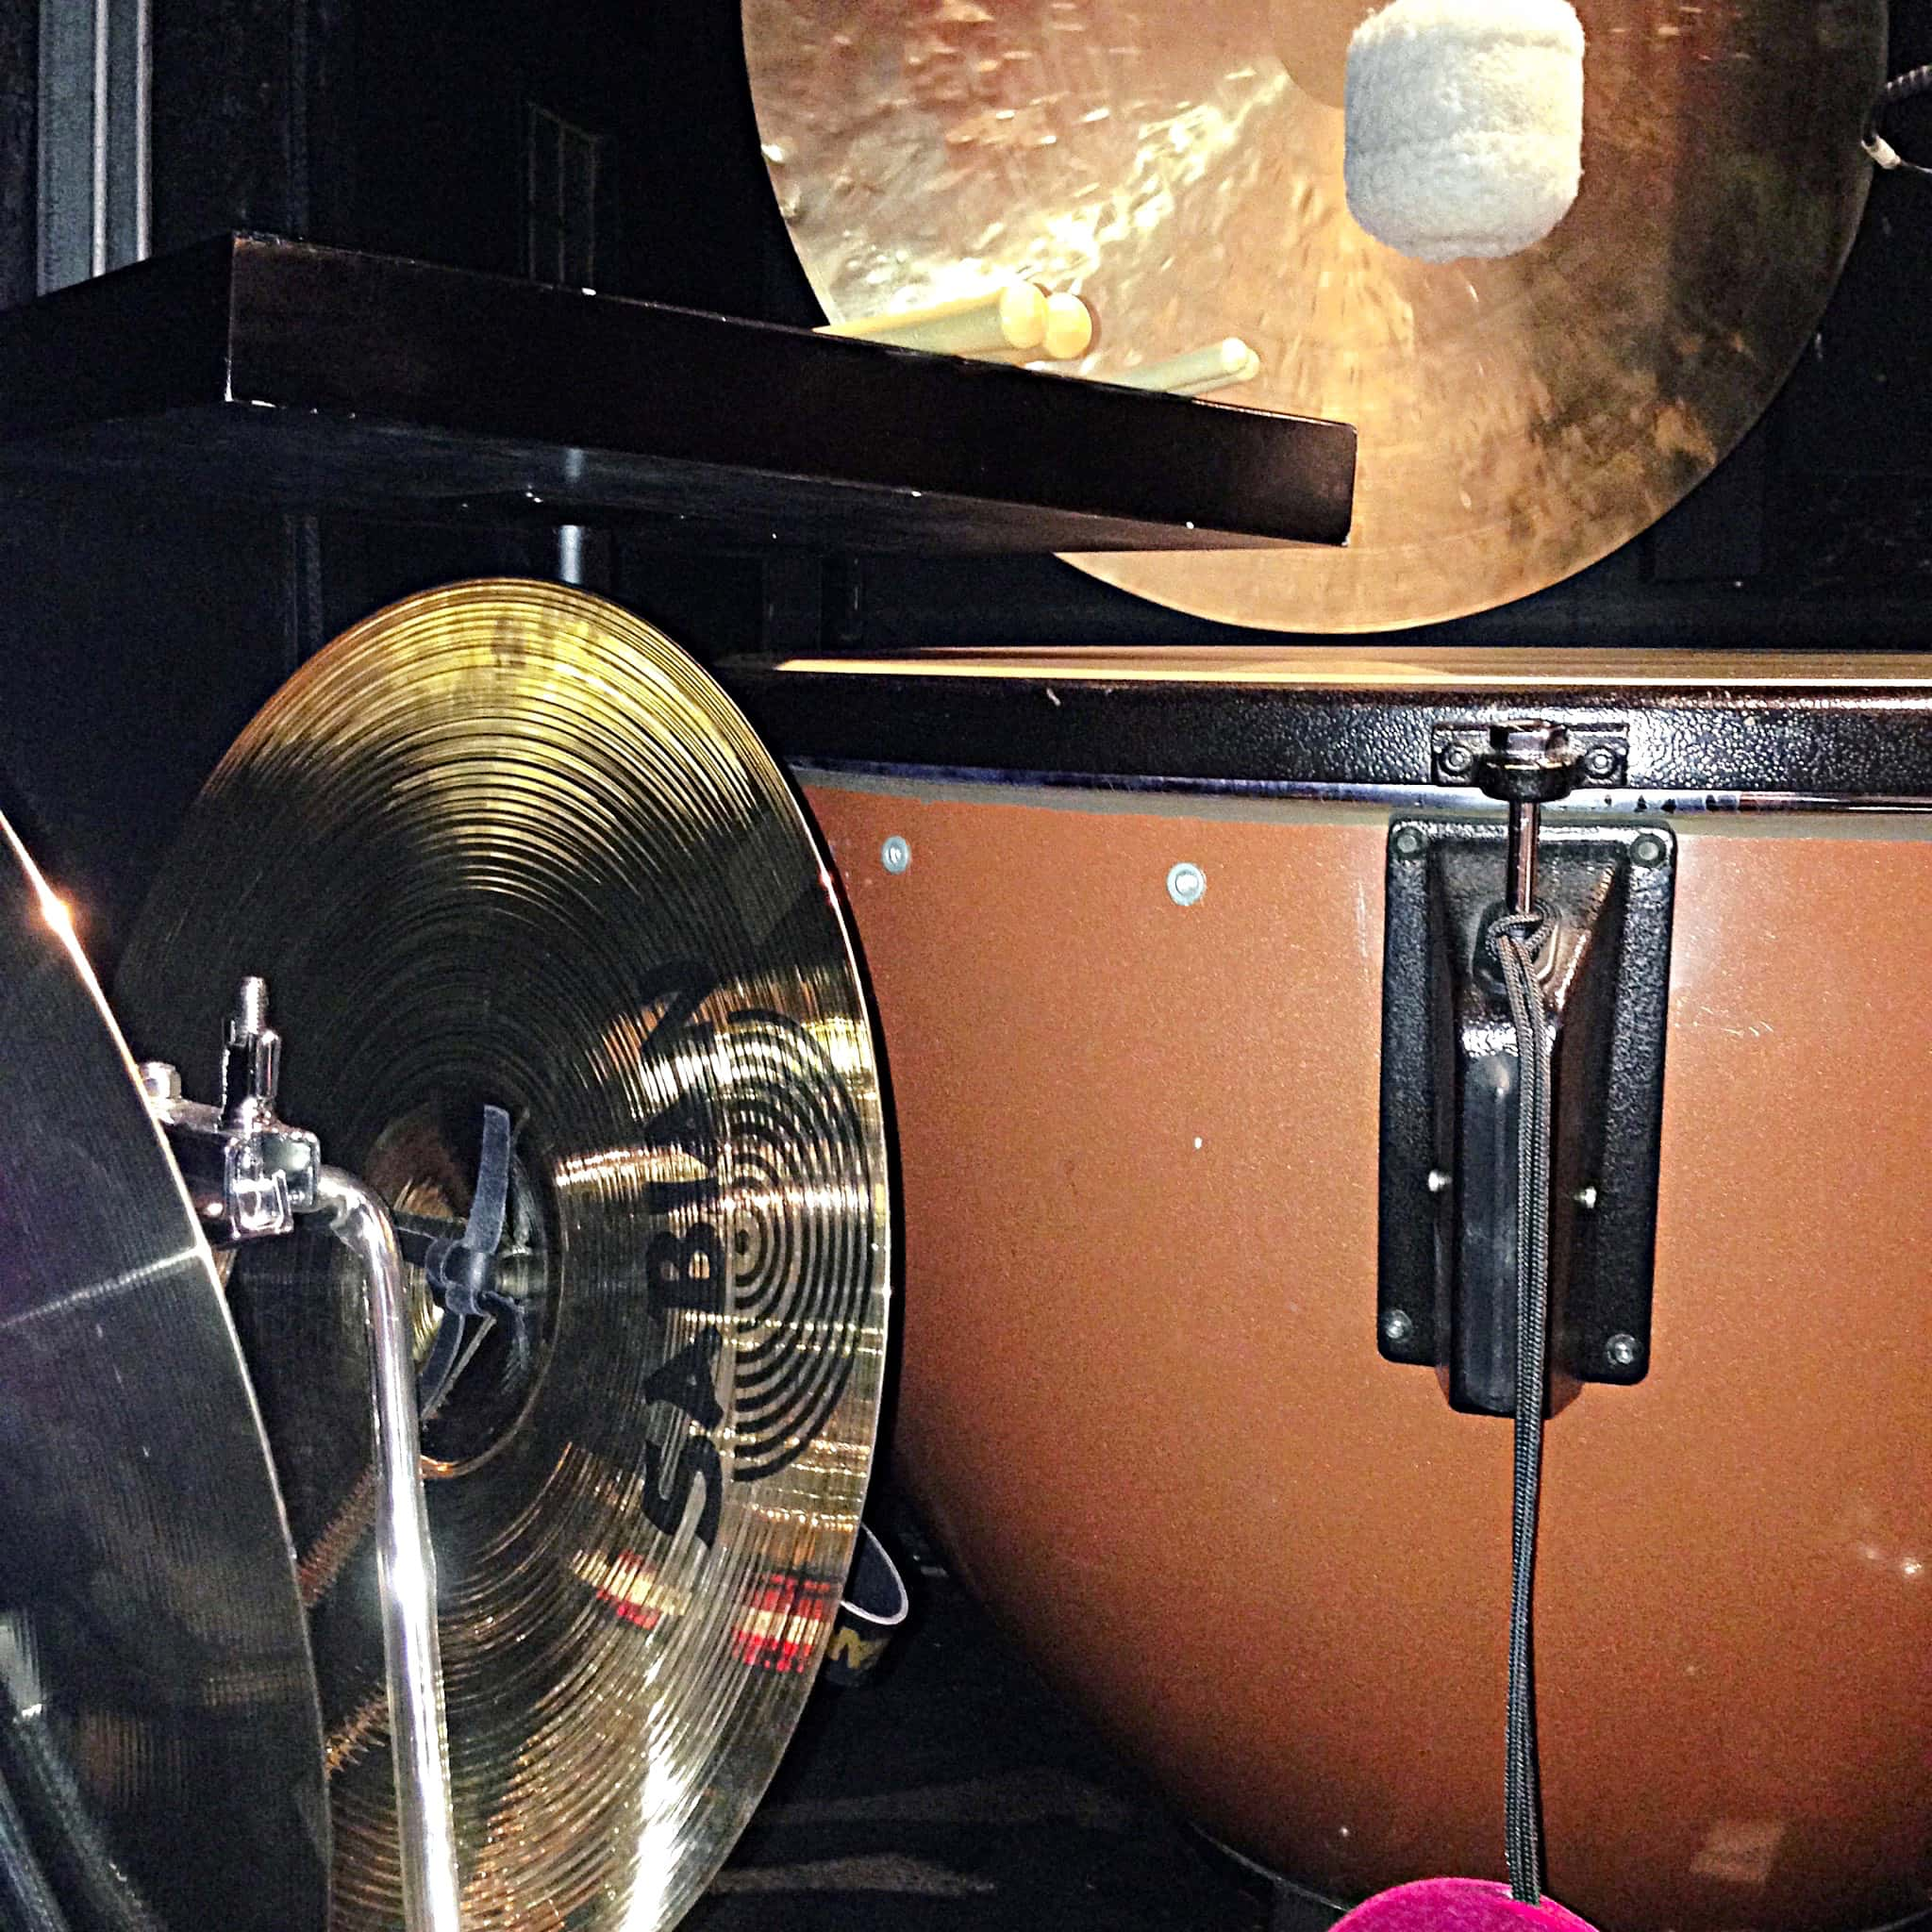 Shan Chana's percussion setup for Aladdin at the Prince of Wales Theatre in London's West End.